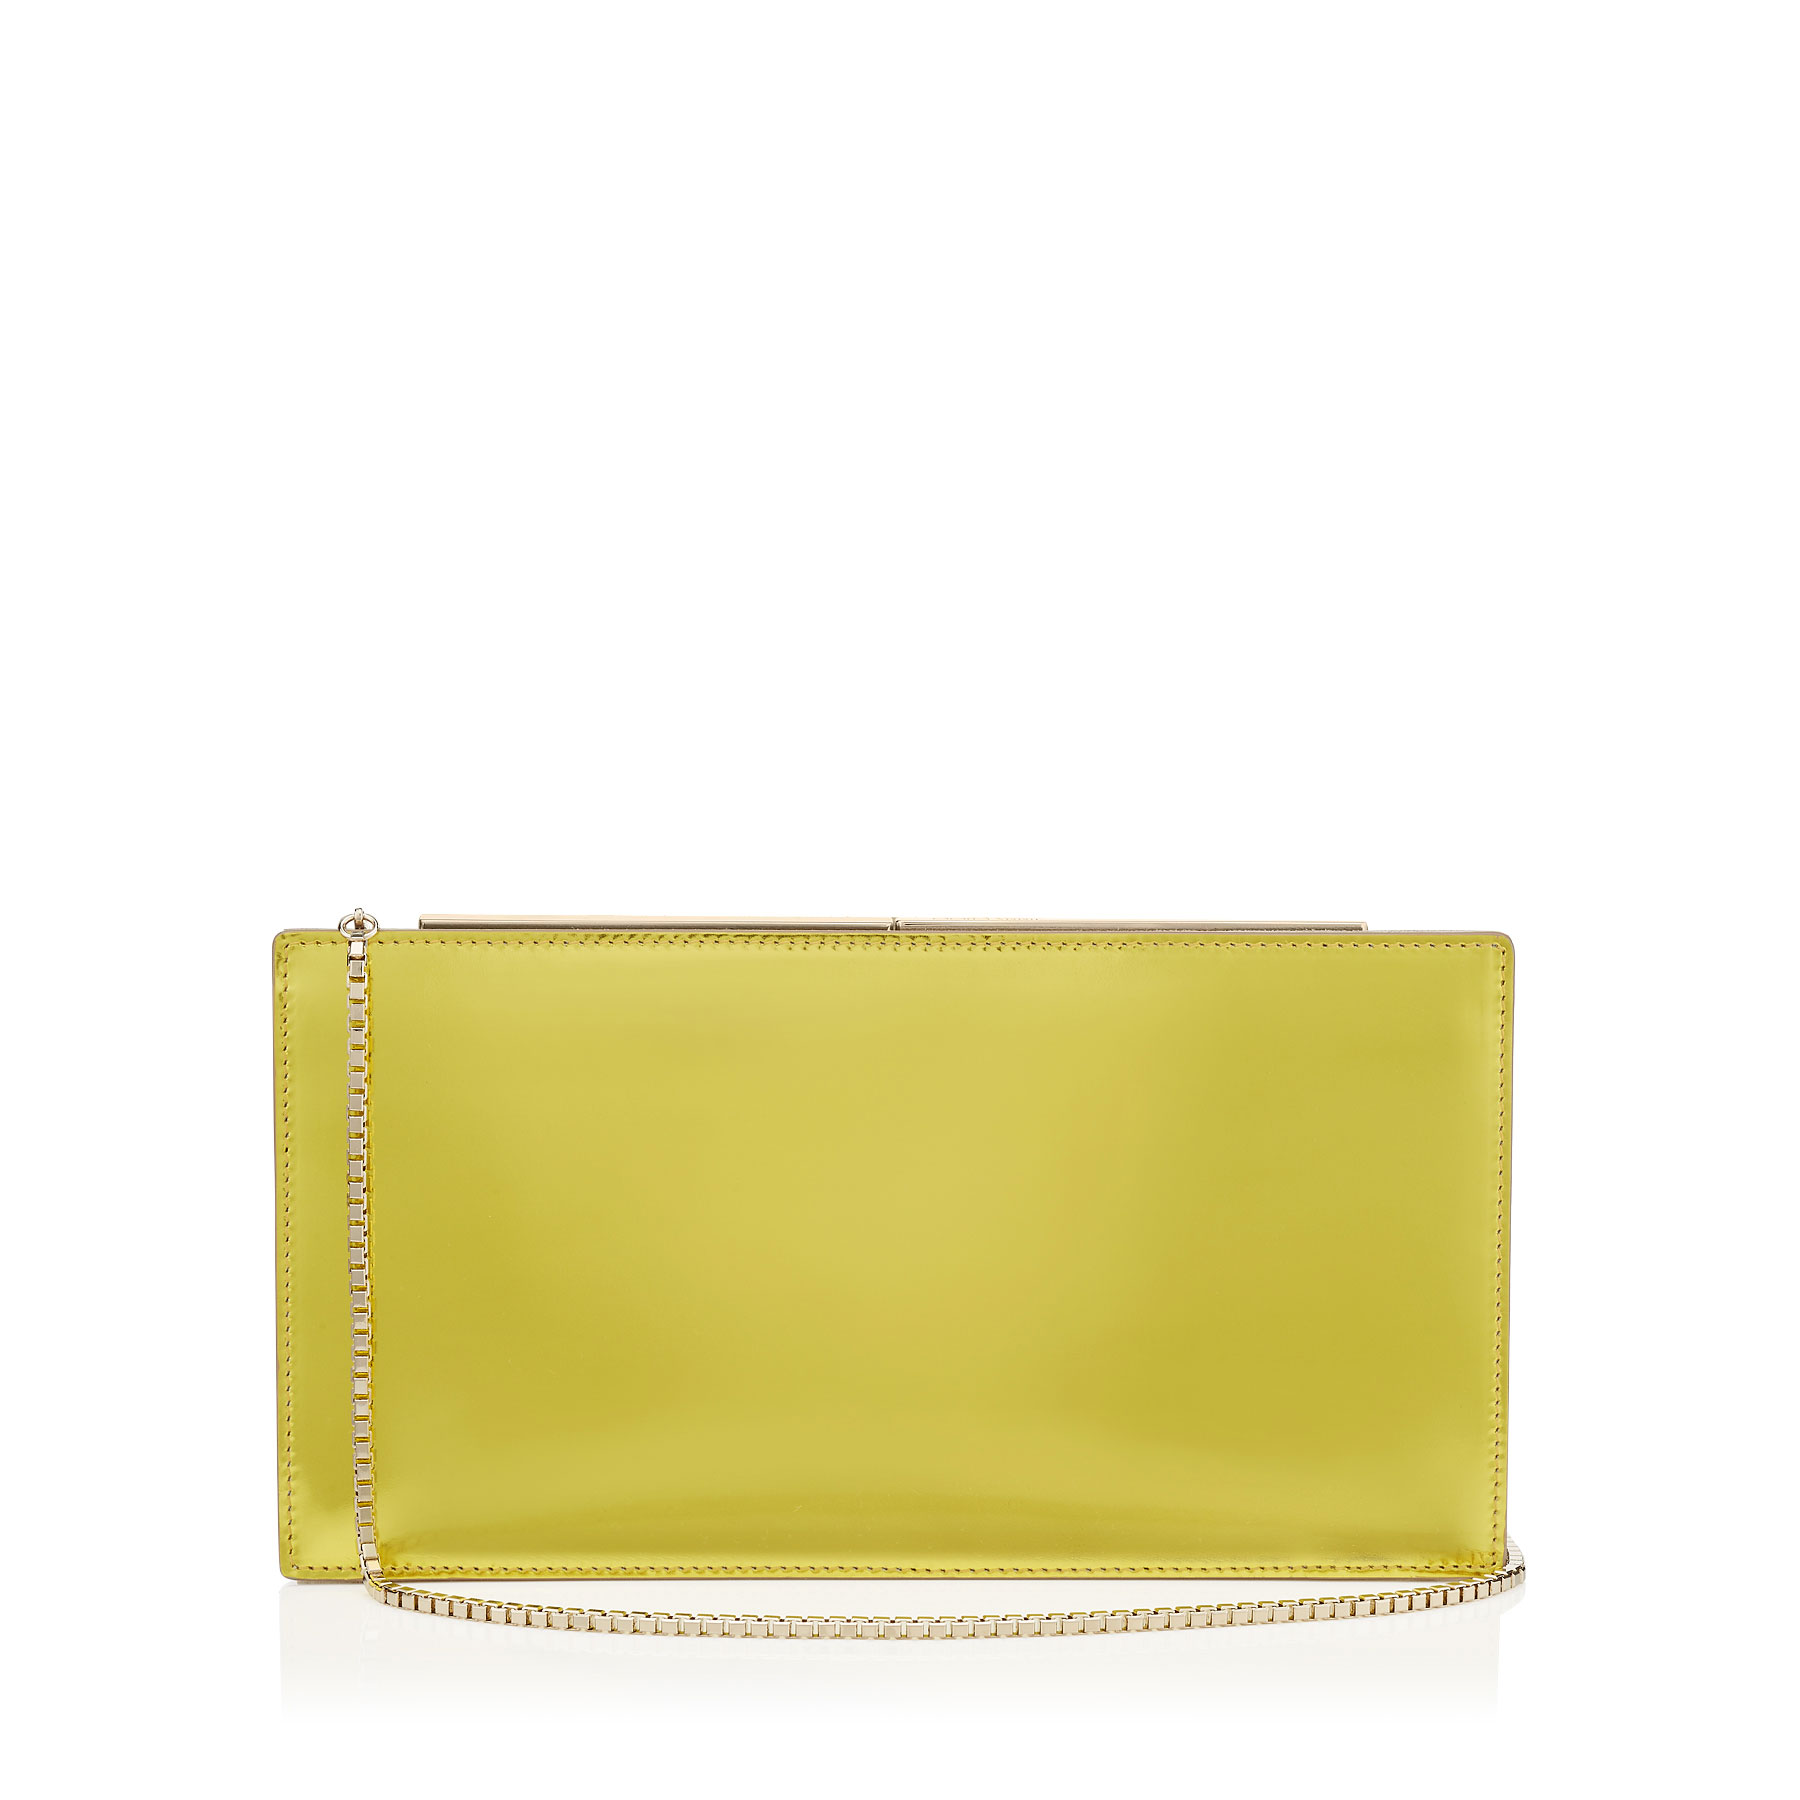 TUX Acid Yellow Mirror Leather and Suede Clutch Bag